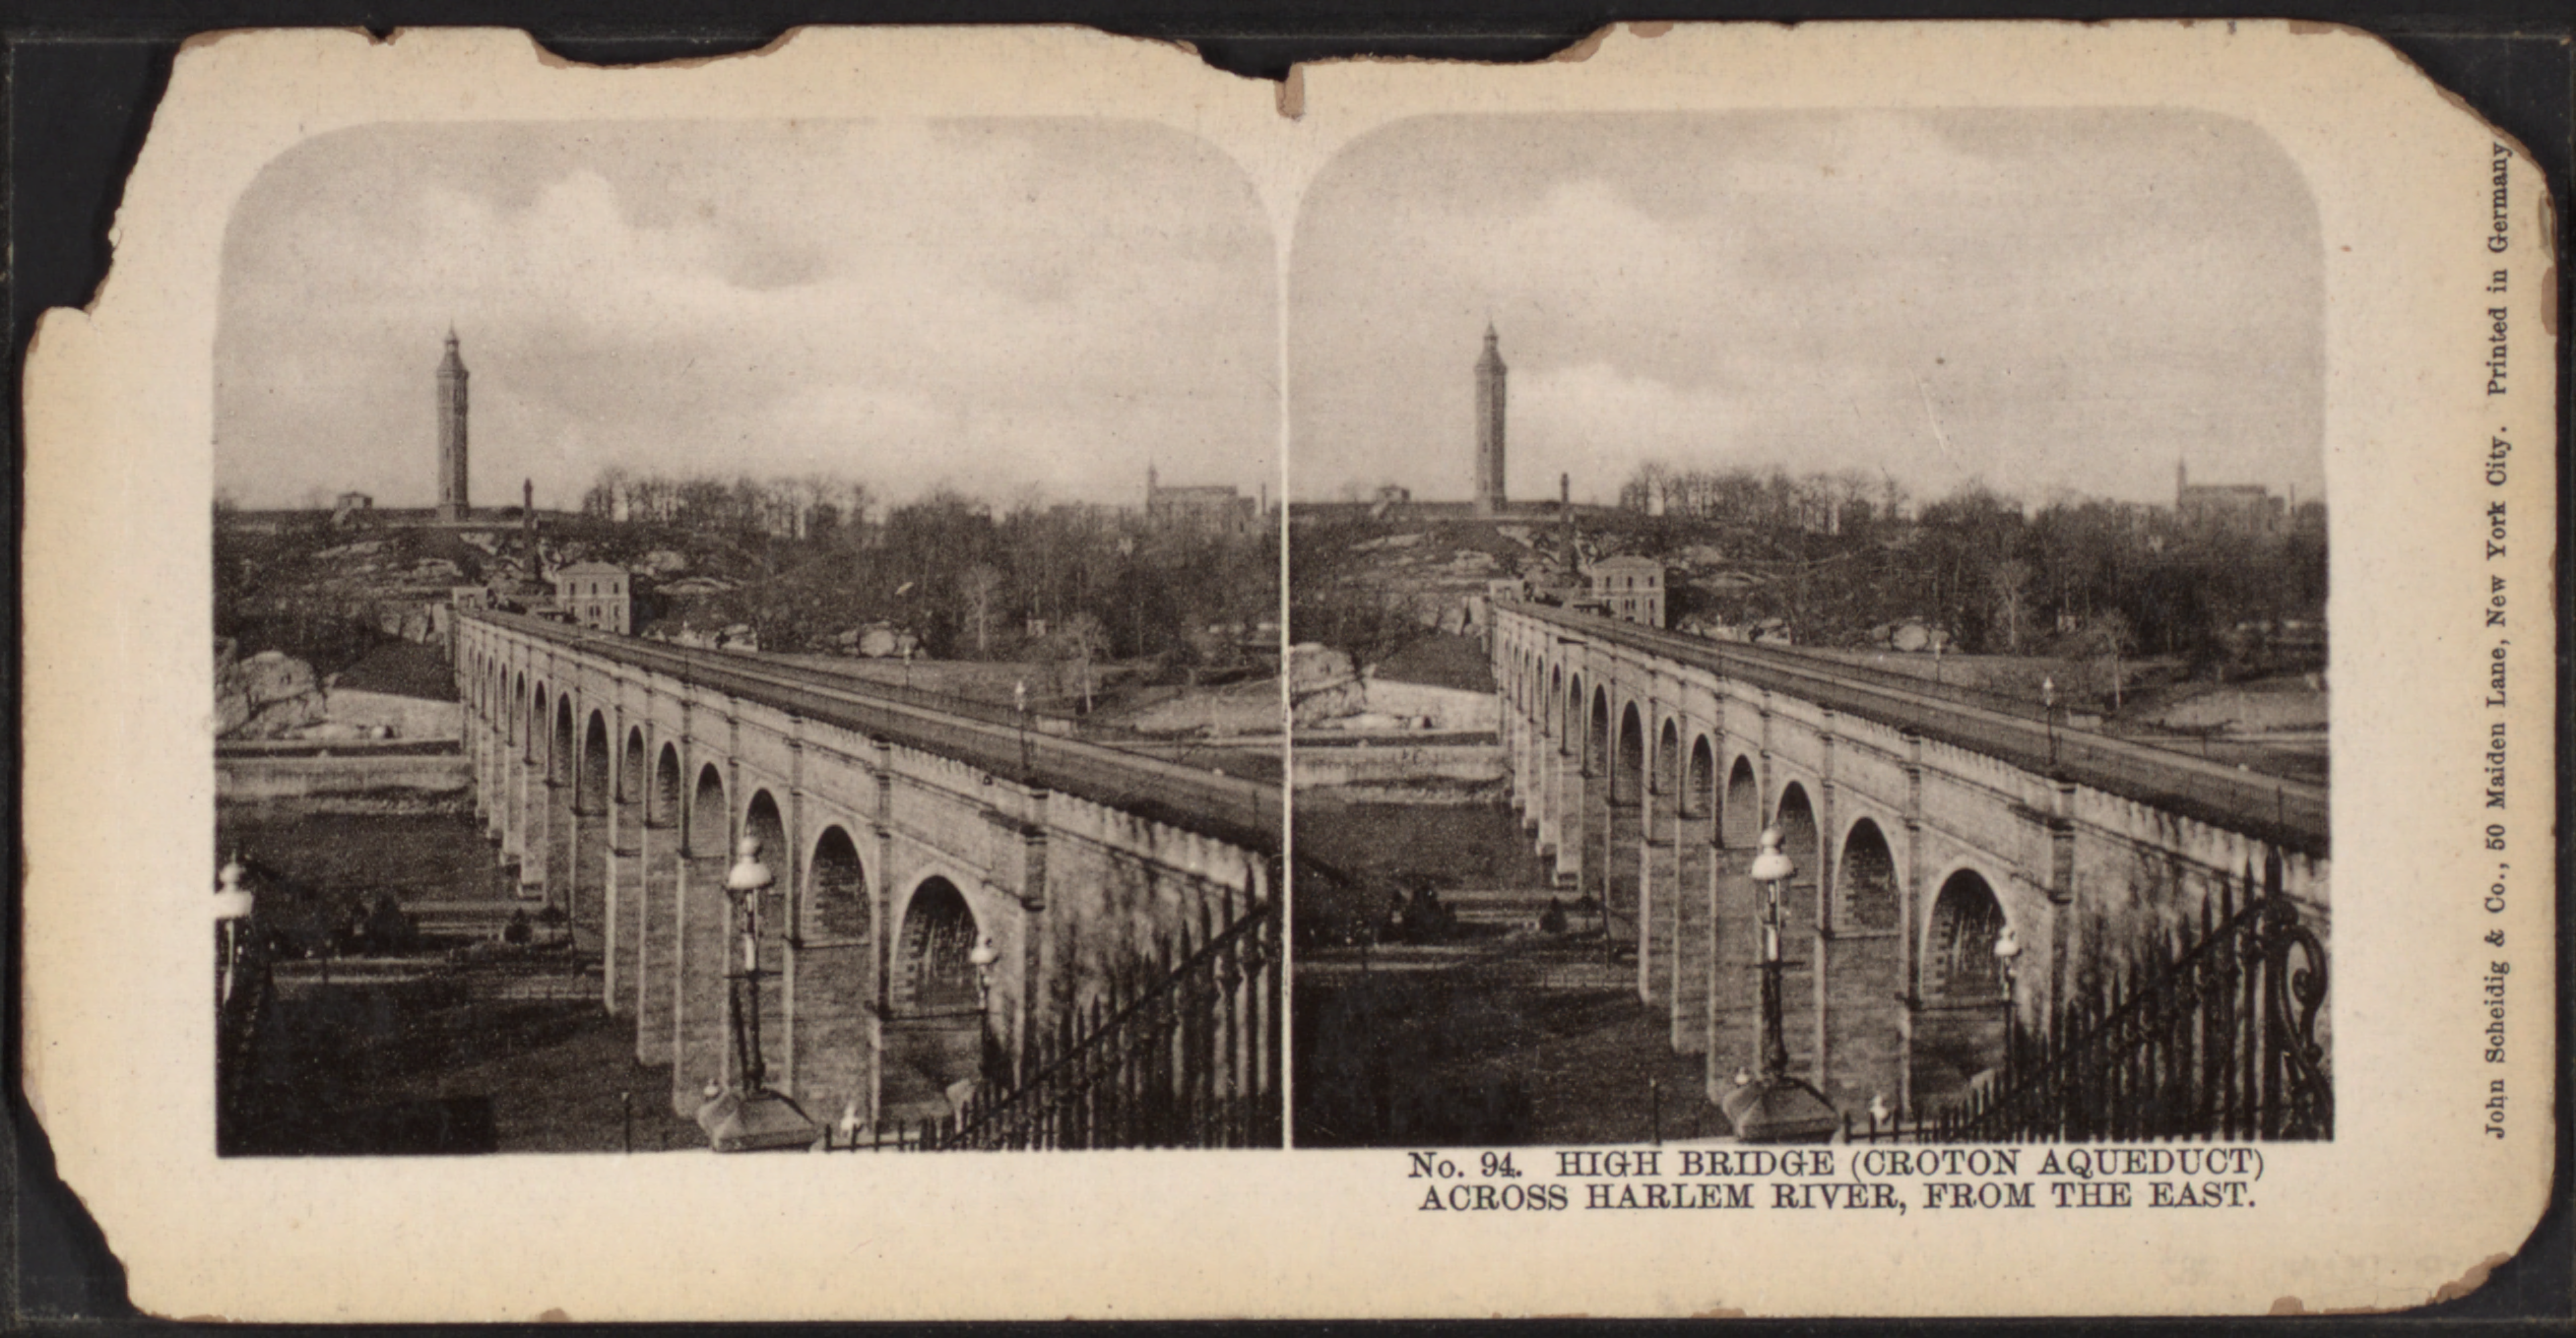 High_Bridge_(Croton_Aqueduct),_across_Harlem_River,_from_the_East,_from_Robert_N._Dennis_collection_of_stereoscopic_views.png